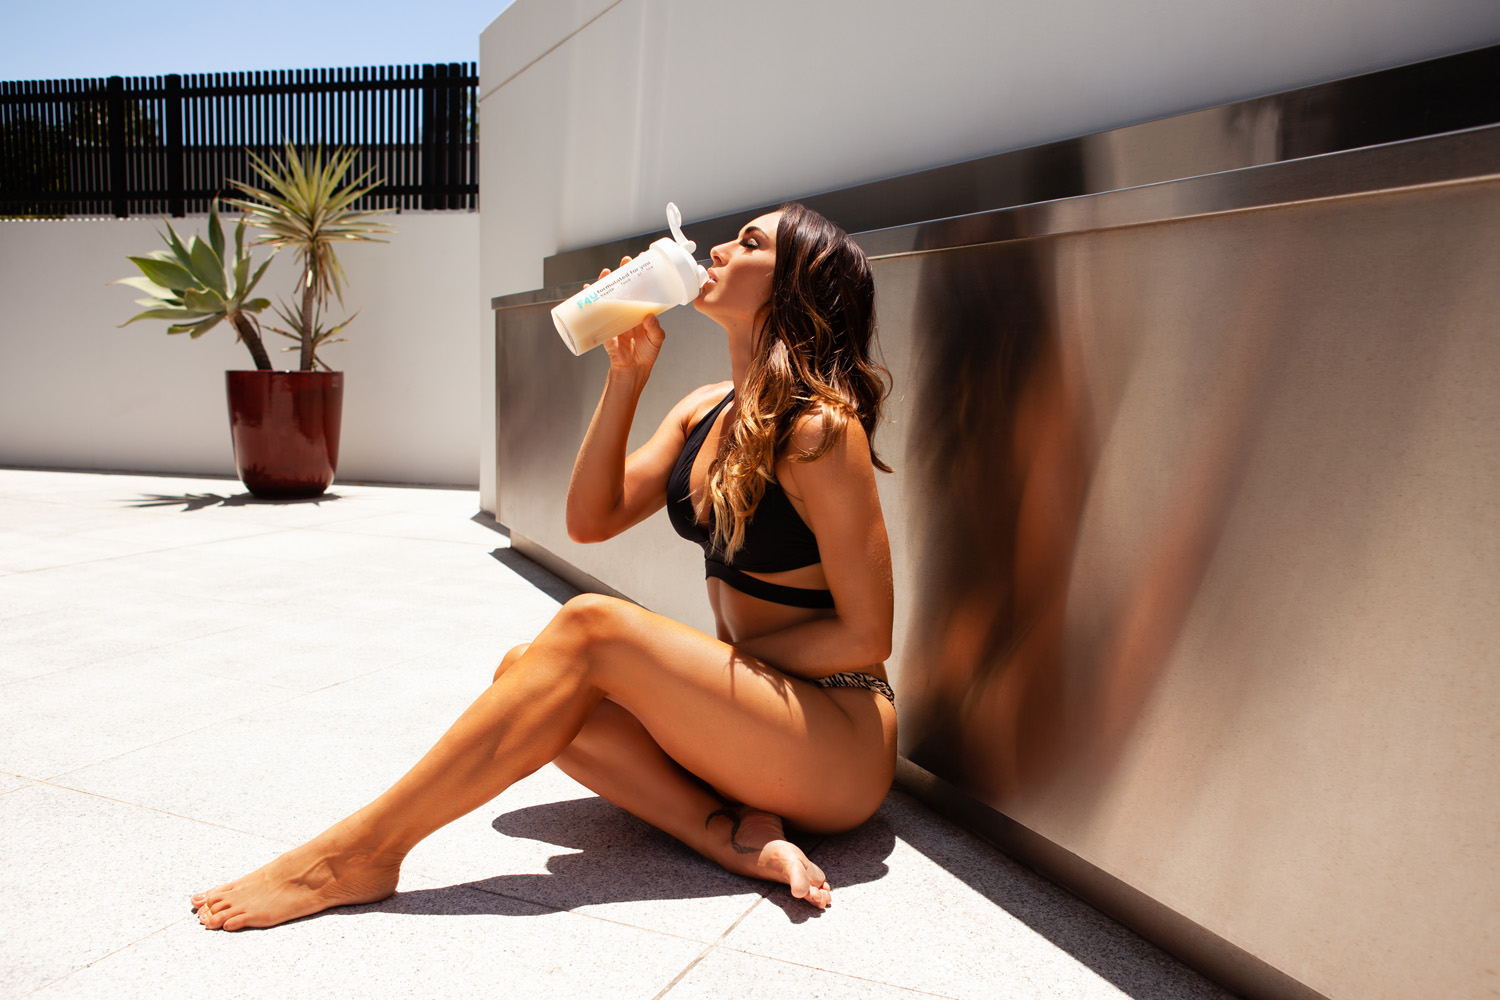 Fitness model in a bikini with a health drink, fitness model with green eyes, Fitness model in a bikini, qca photographer, queensland college of art photography graduate, queensland college of art photography, queensland college of art masters degree, queensland college of art graduate, model sitting at the pool, gold coast swimwear photography, gold coast model photography, instagram model photography, gold coast instagram model, gold coast instagram photography, gold coast fashion photography, lana noir, surfers paradise photography, broadbeach photographer, robina photographer, professional model photography, gold coast professional model, gold coast lifestyle photography, gold coast fitness photography, gold coast health photography, gold coast healthy living, gold coast healthy lifestyle, gold coast fitness